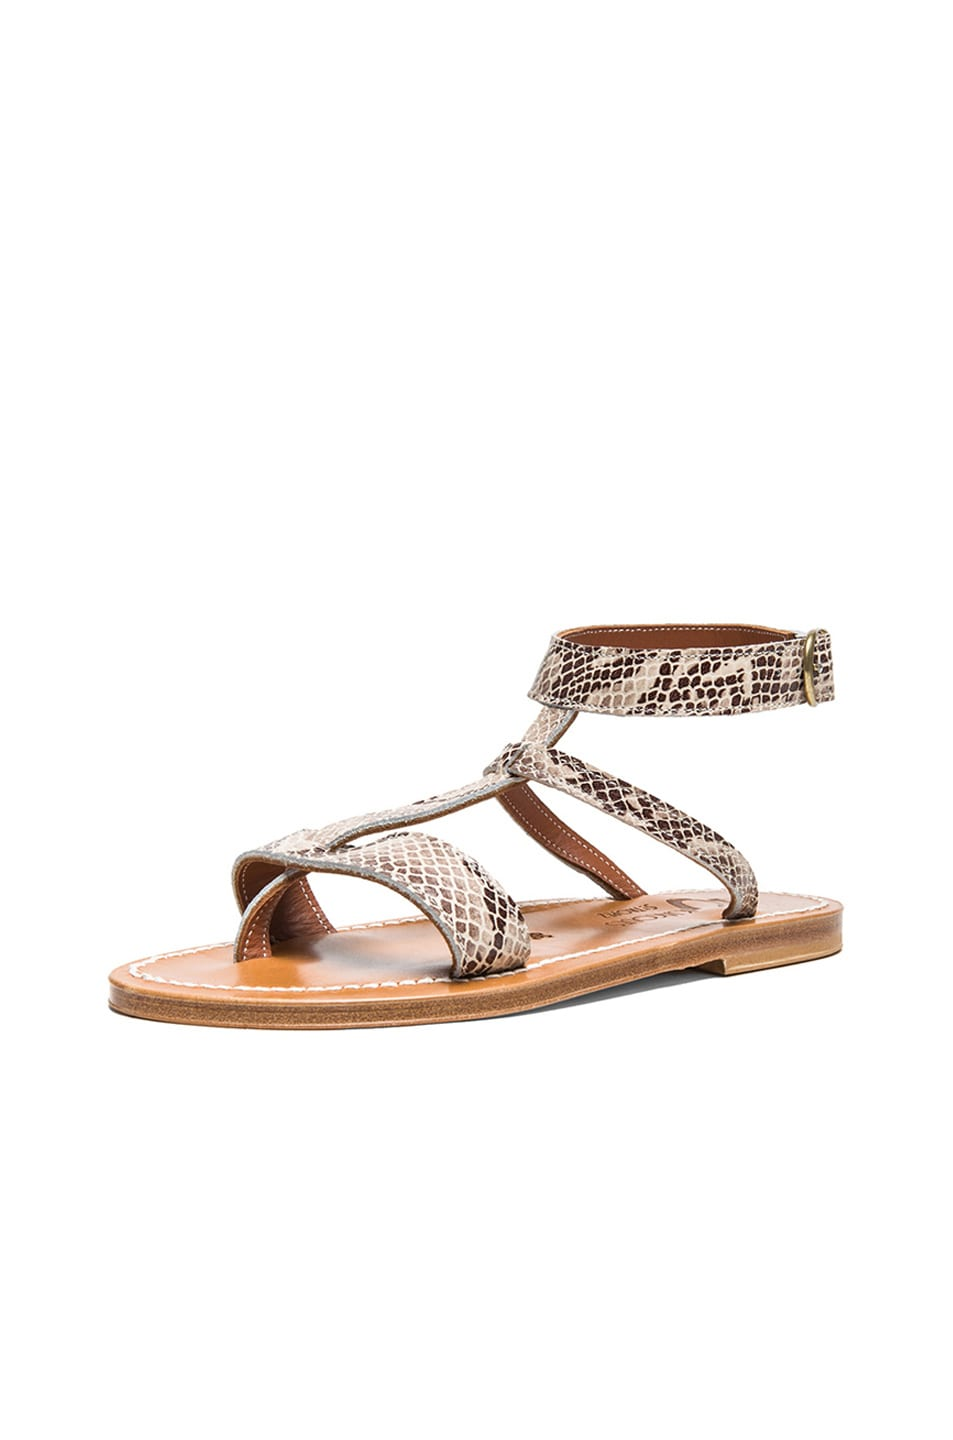 Image 2 of K Jacques Corvette Snakeskin Embossed Leather Sandals in Duna